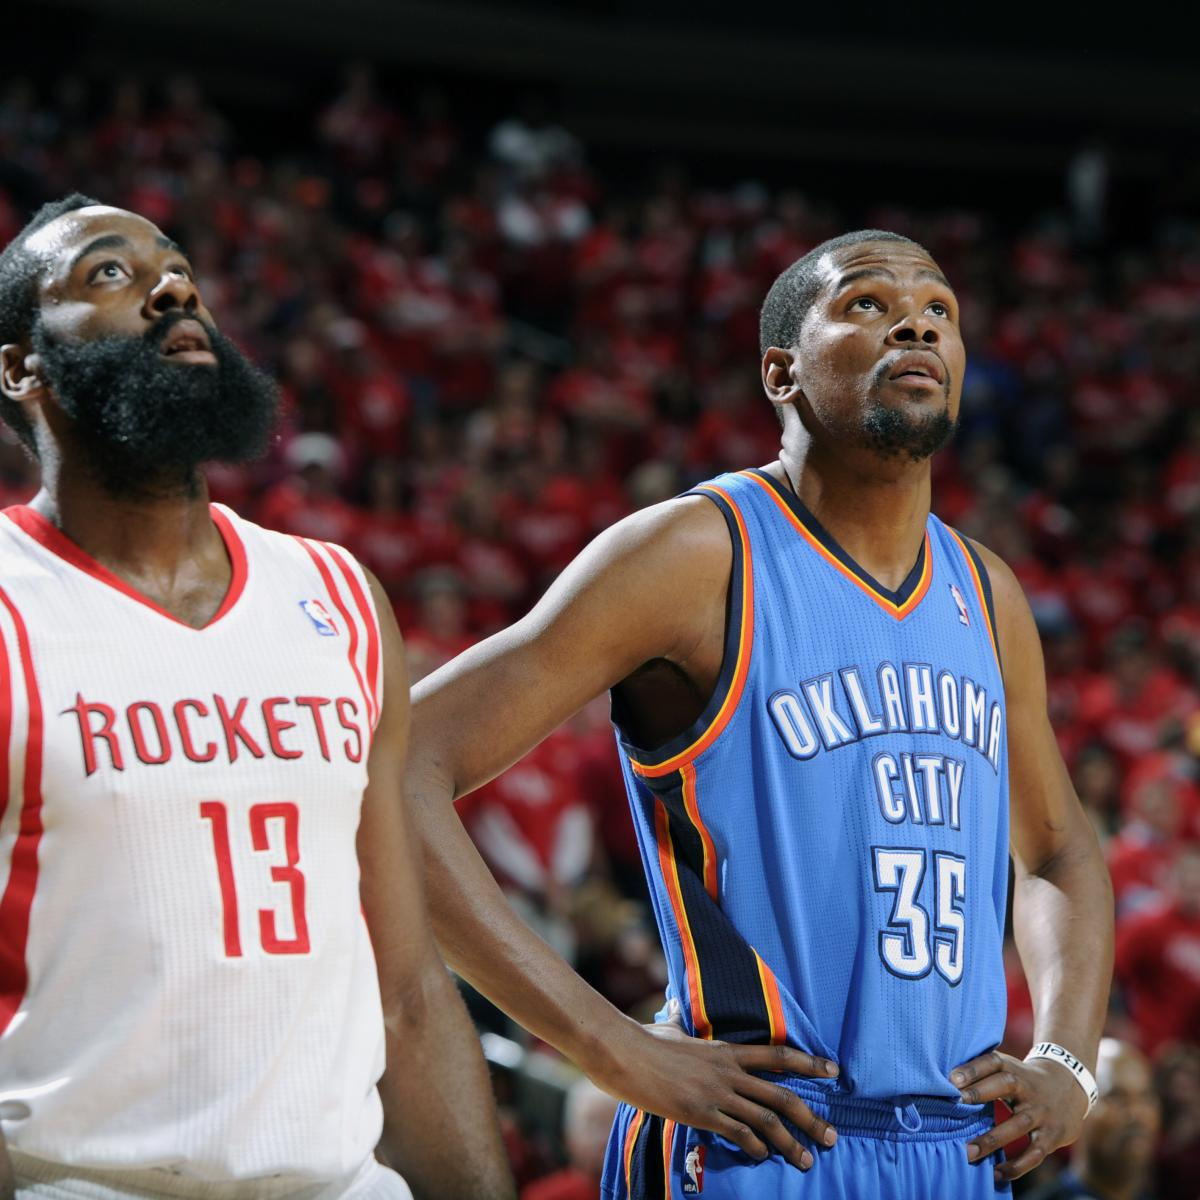 Rockets Vs Okc Game 6: Definitive Guide To Rockets Vs. Thunder And Sunday's Top